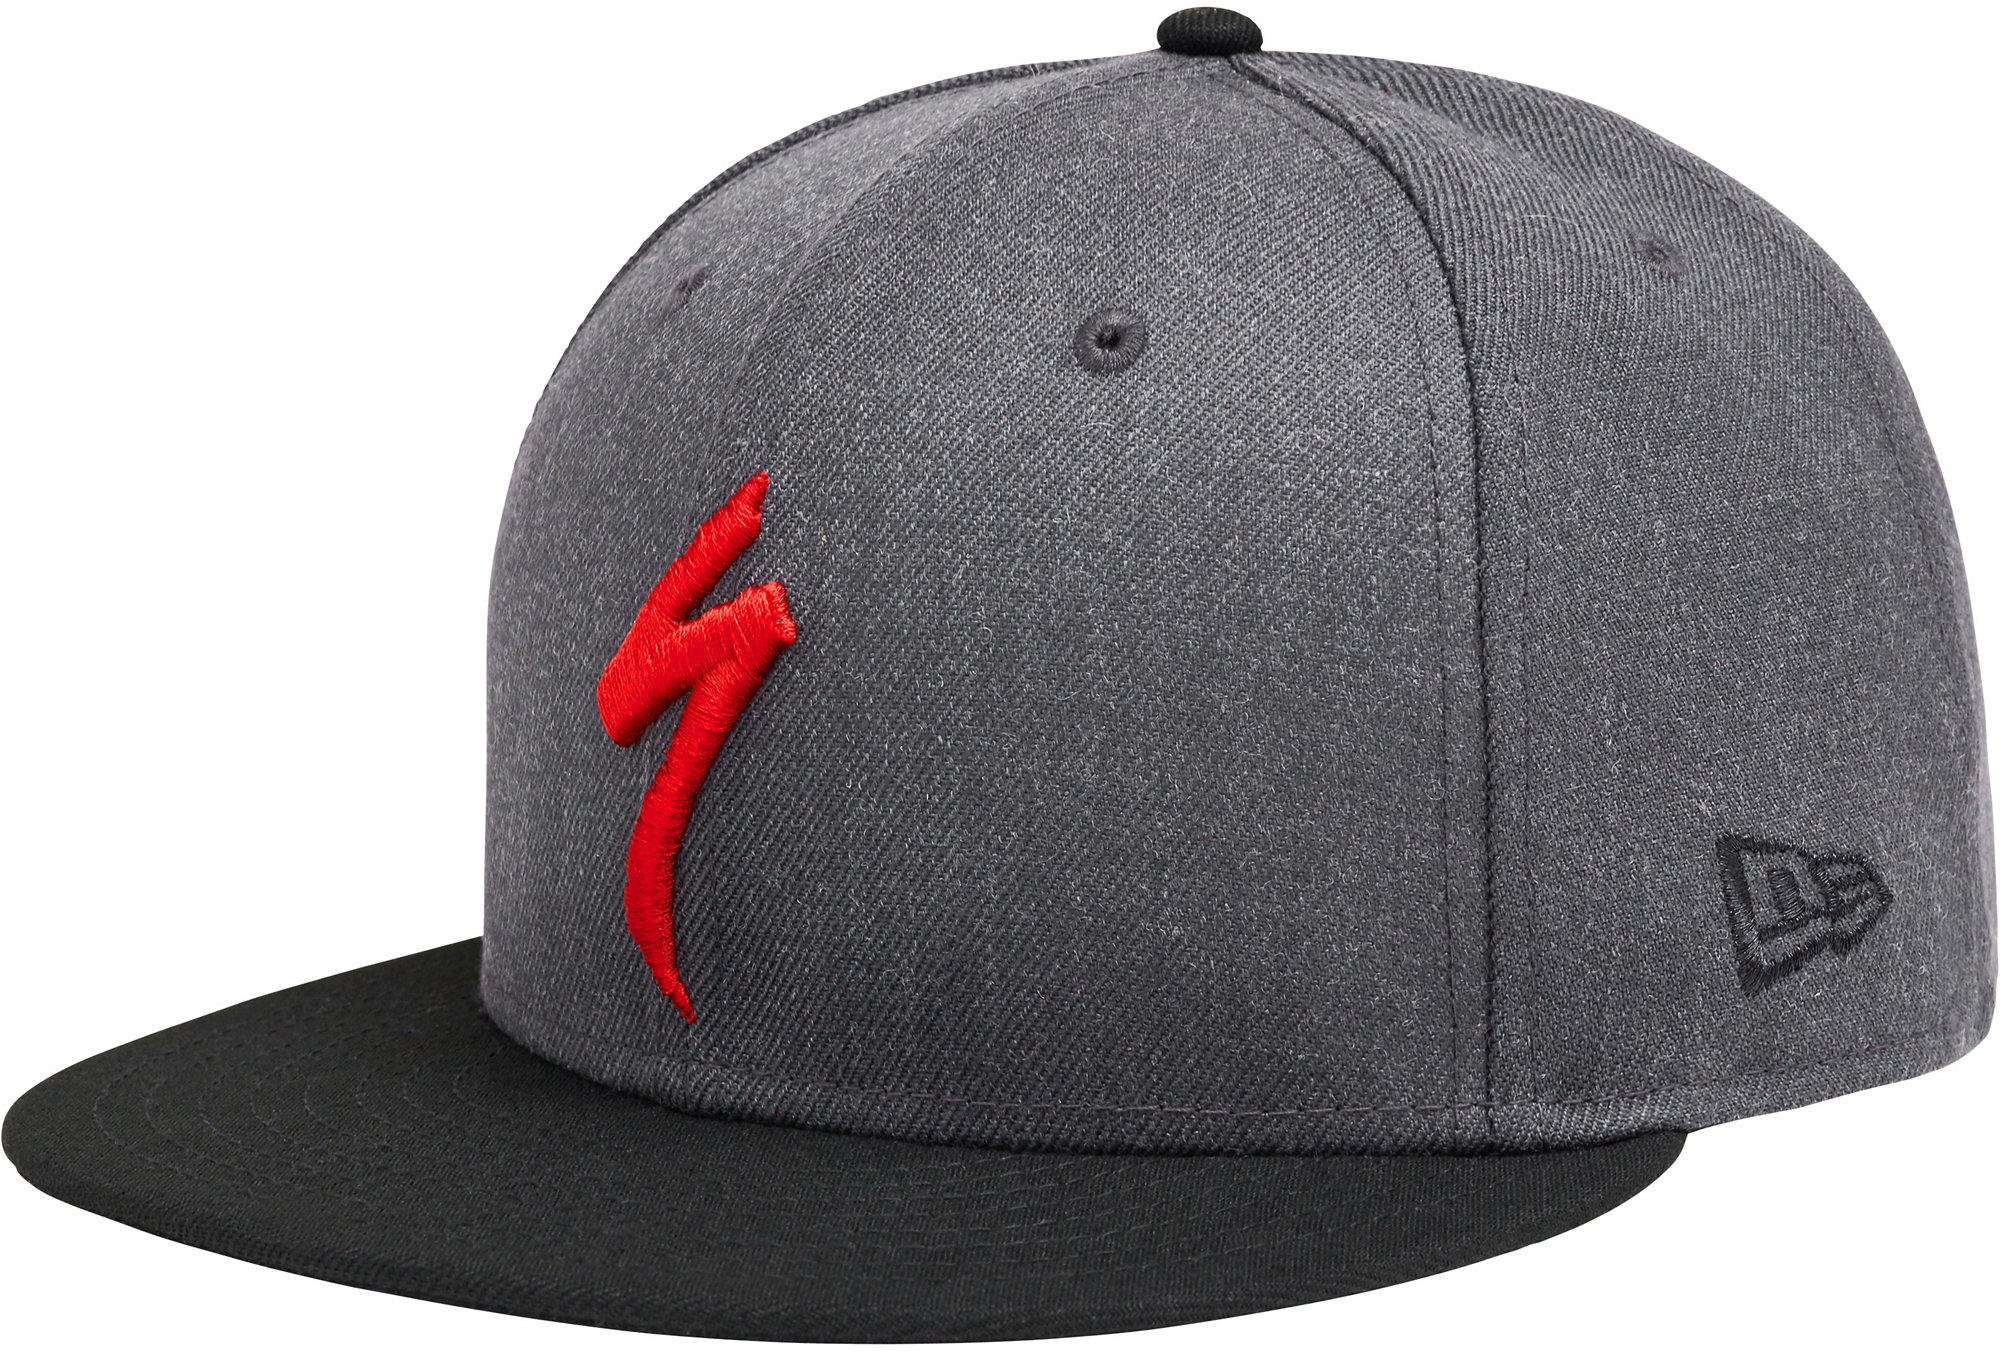 2018 Specialized Specialized New Era 9Fifty Snapback Hat - Specialized  Concept Store cb2e2f624af